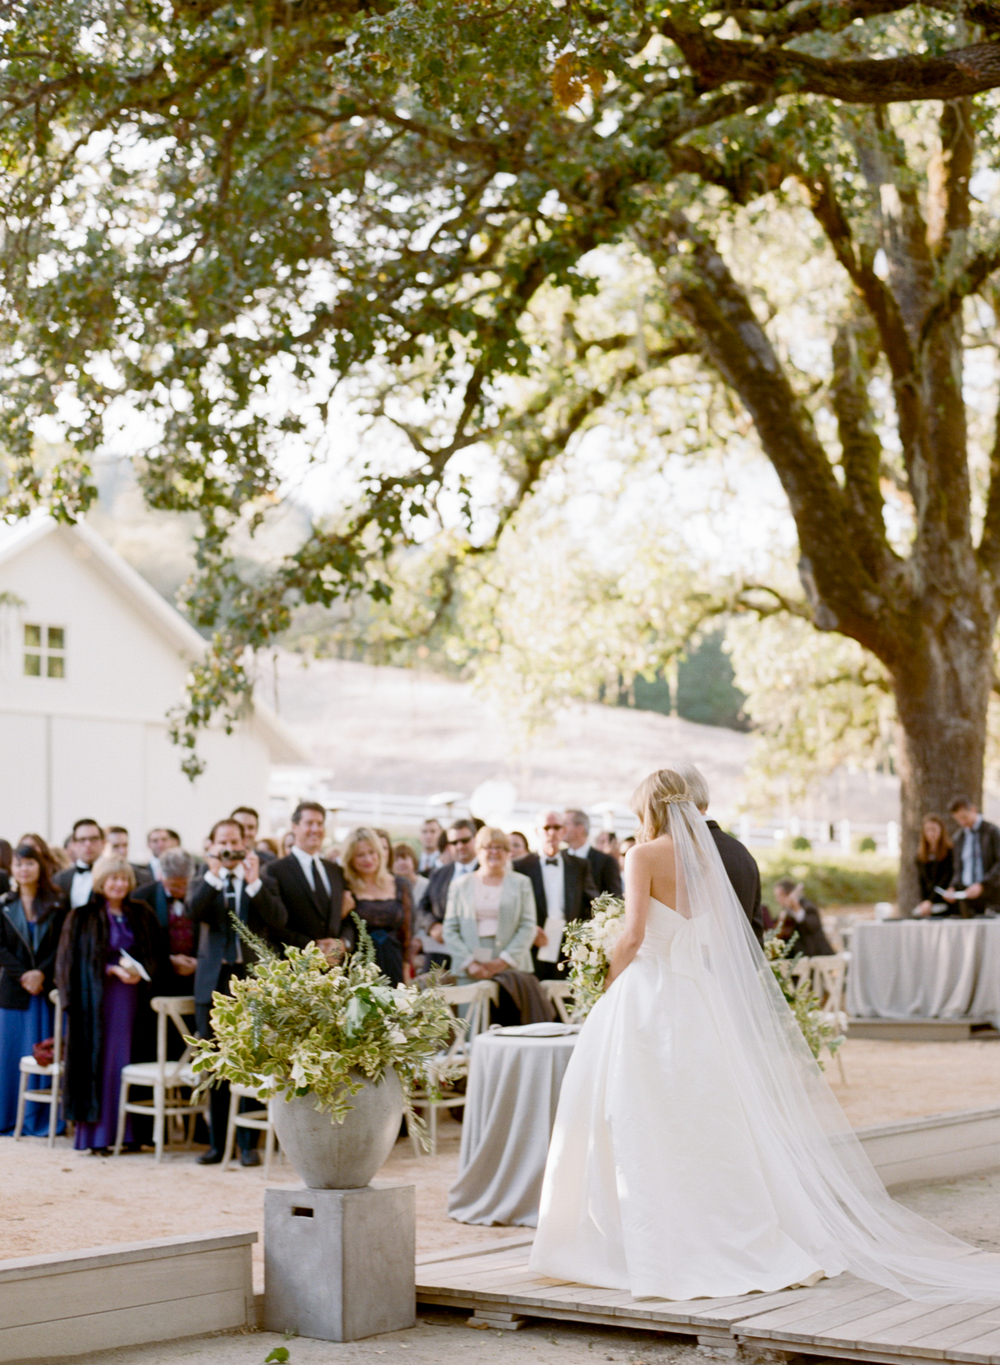 SylvieGil-Durham-Ranch-Organic-Ethereal-Rustic-Father-Aisle-Wedding